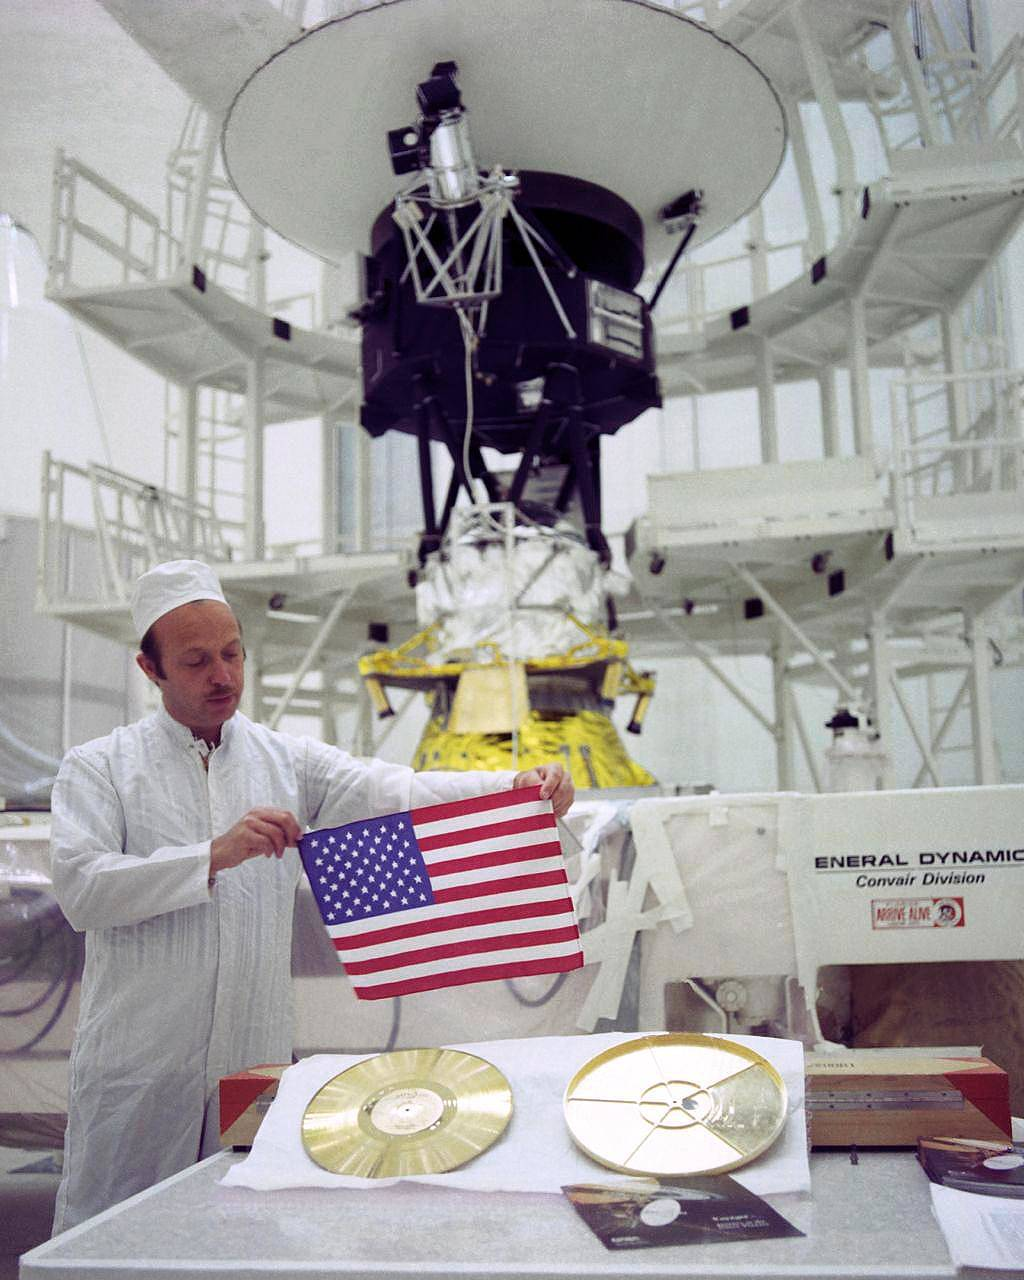 Technician holds American flag in front of Voyager spacecraft and Golden Record with case